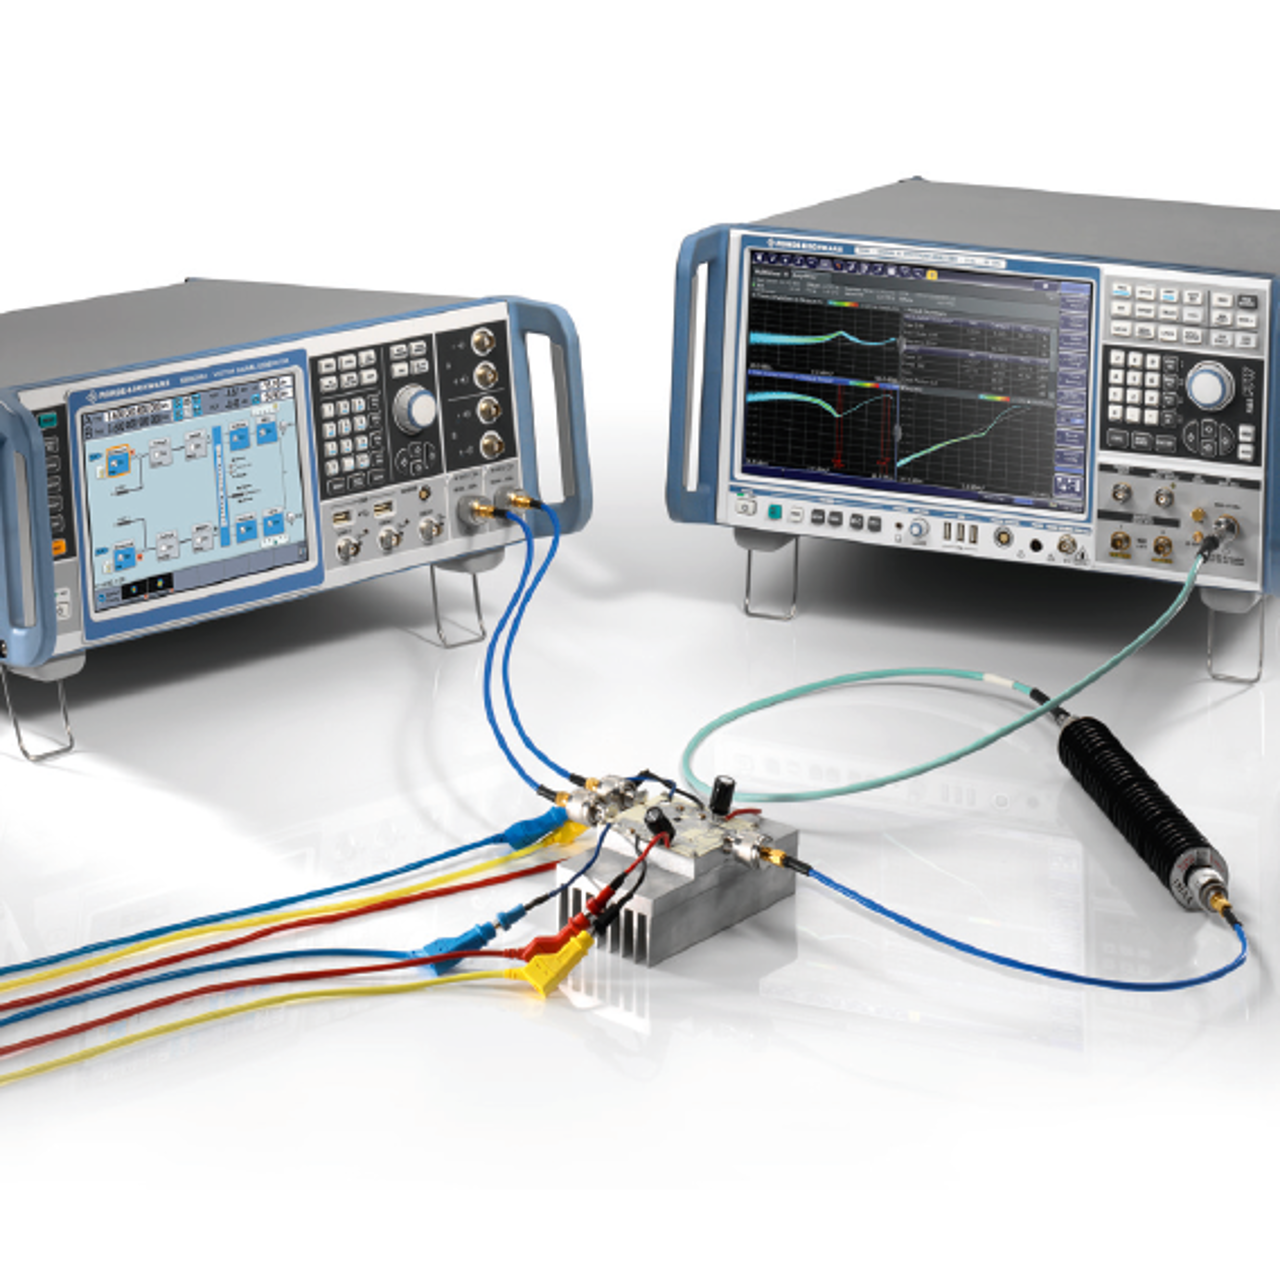 R&S®SMW200A vector signal generator and the R&S®FSW signal and spectrum analyzer